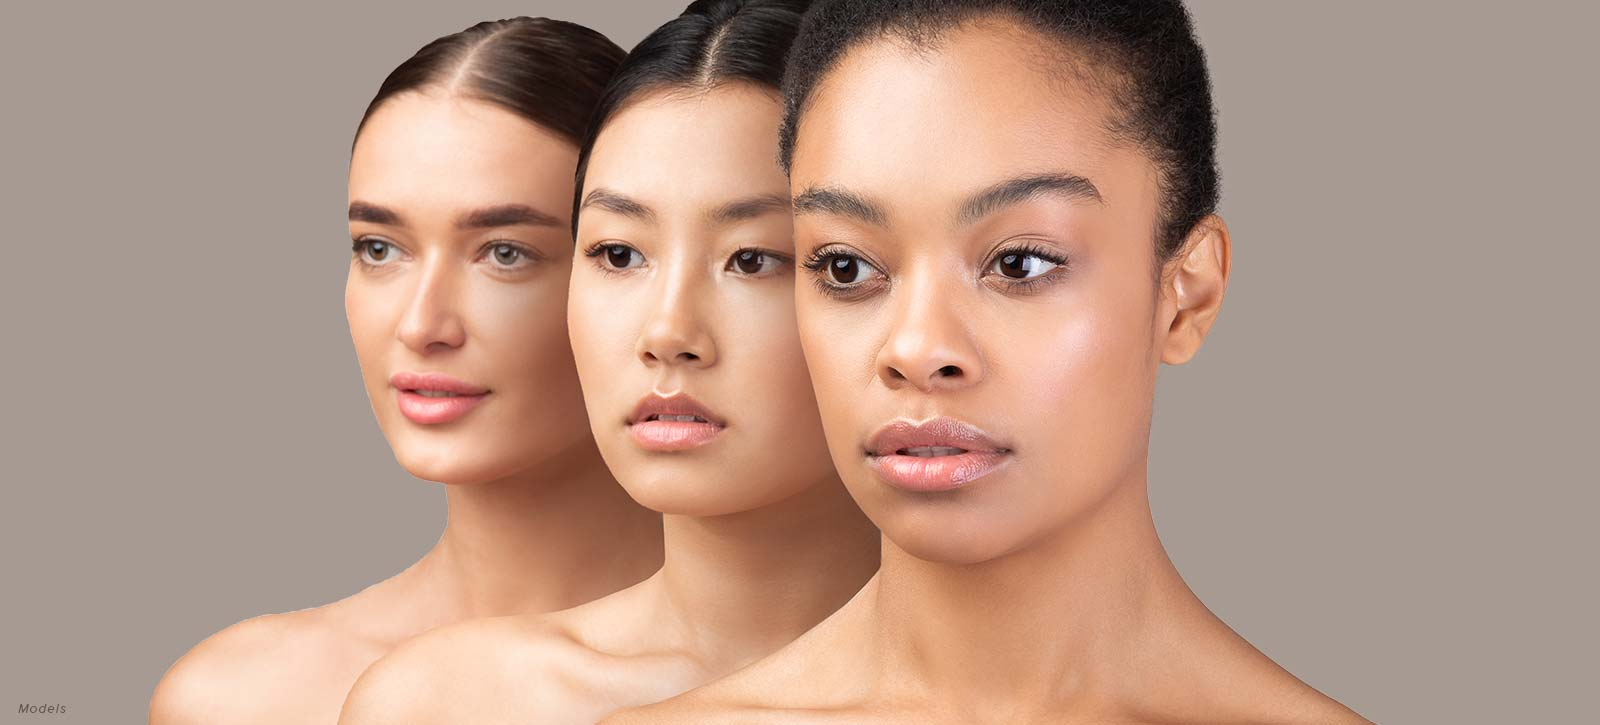 women with lovely skin